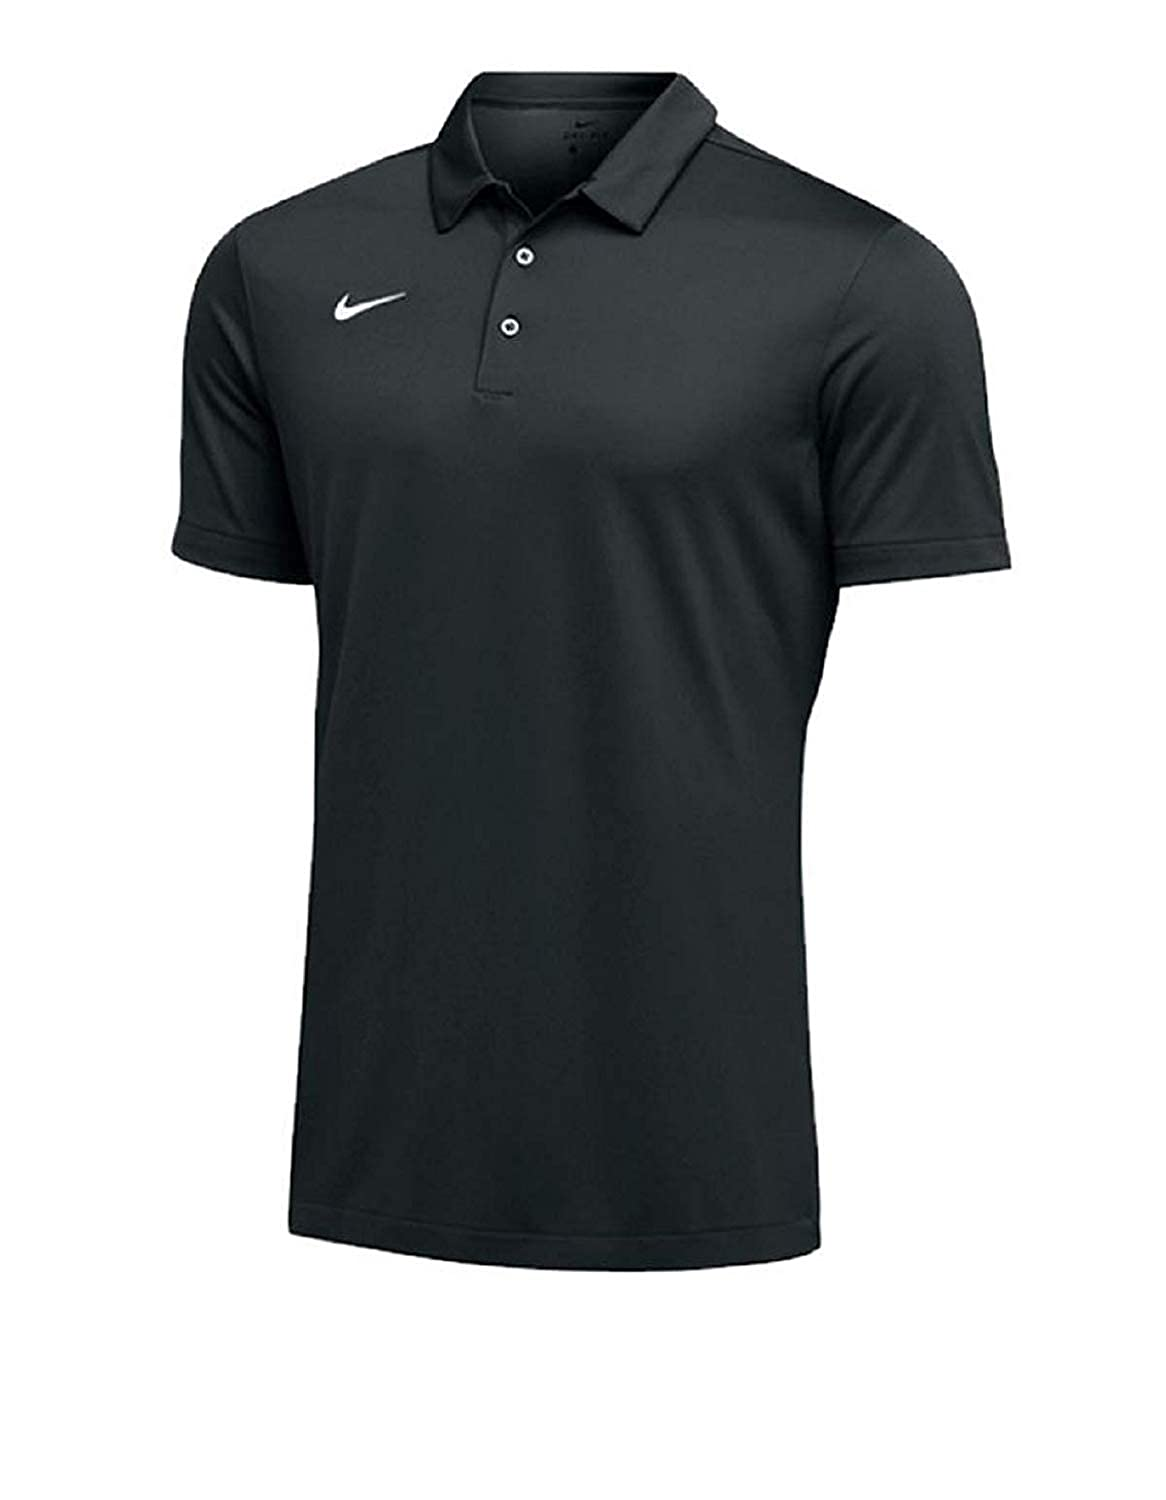 9a1148f2 Nike Mens Dri-FIT Short Sleeve Polo Shirt at Amazon Men's Clothing store: